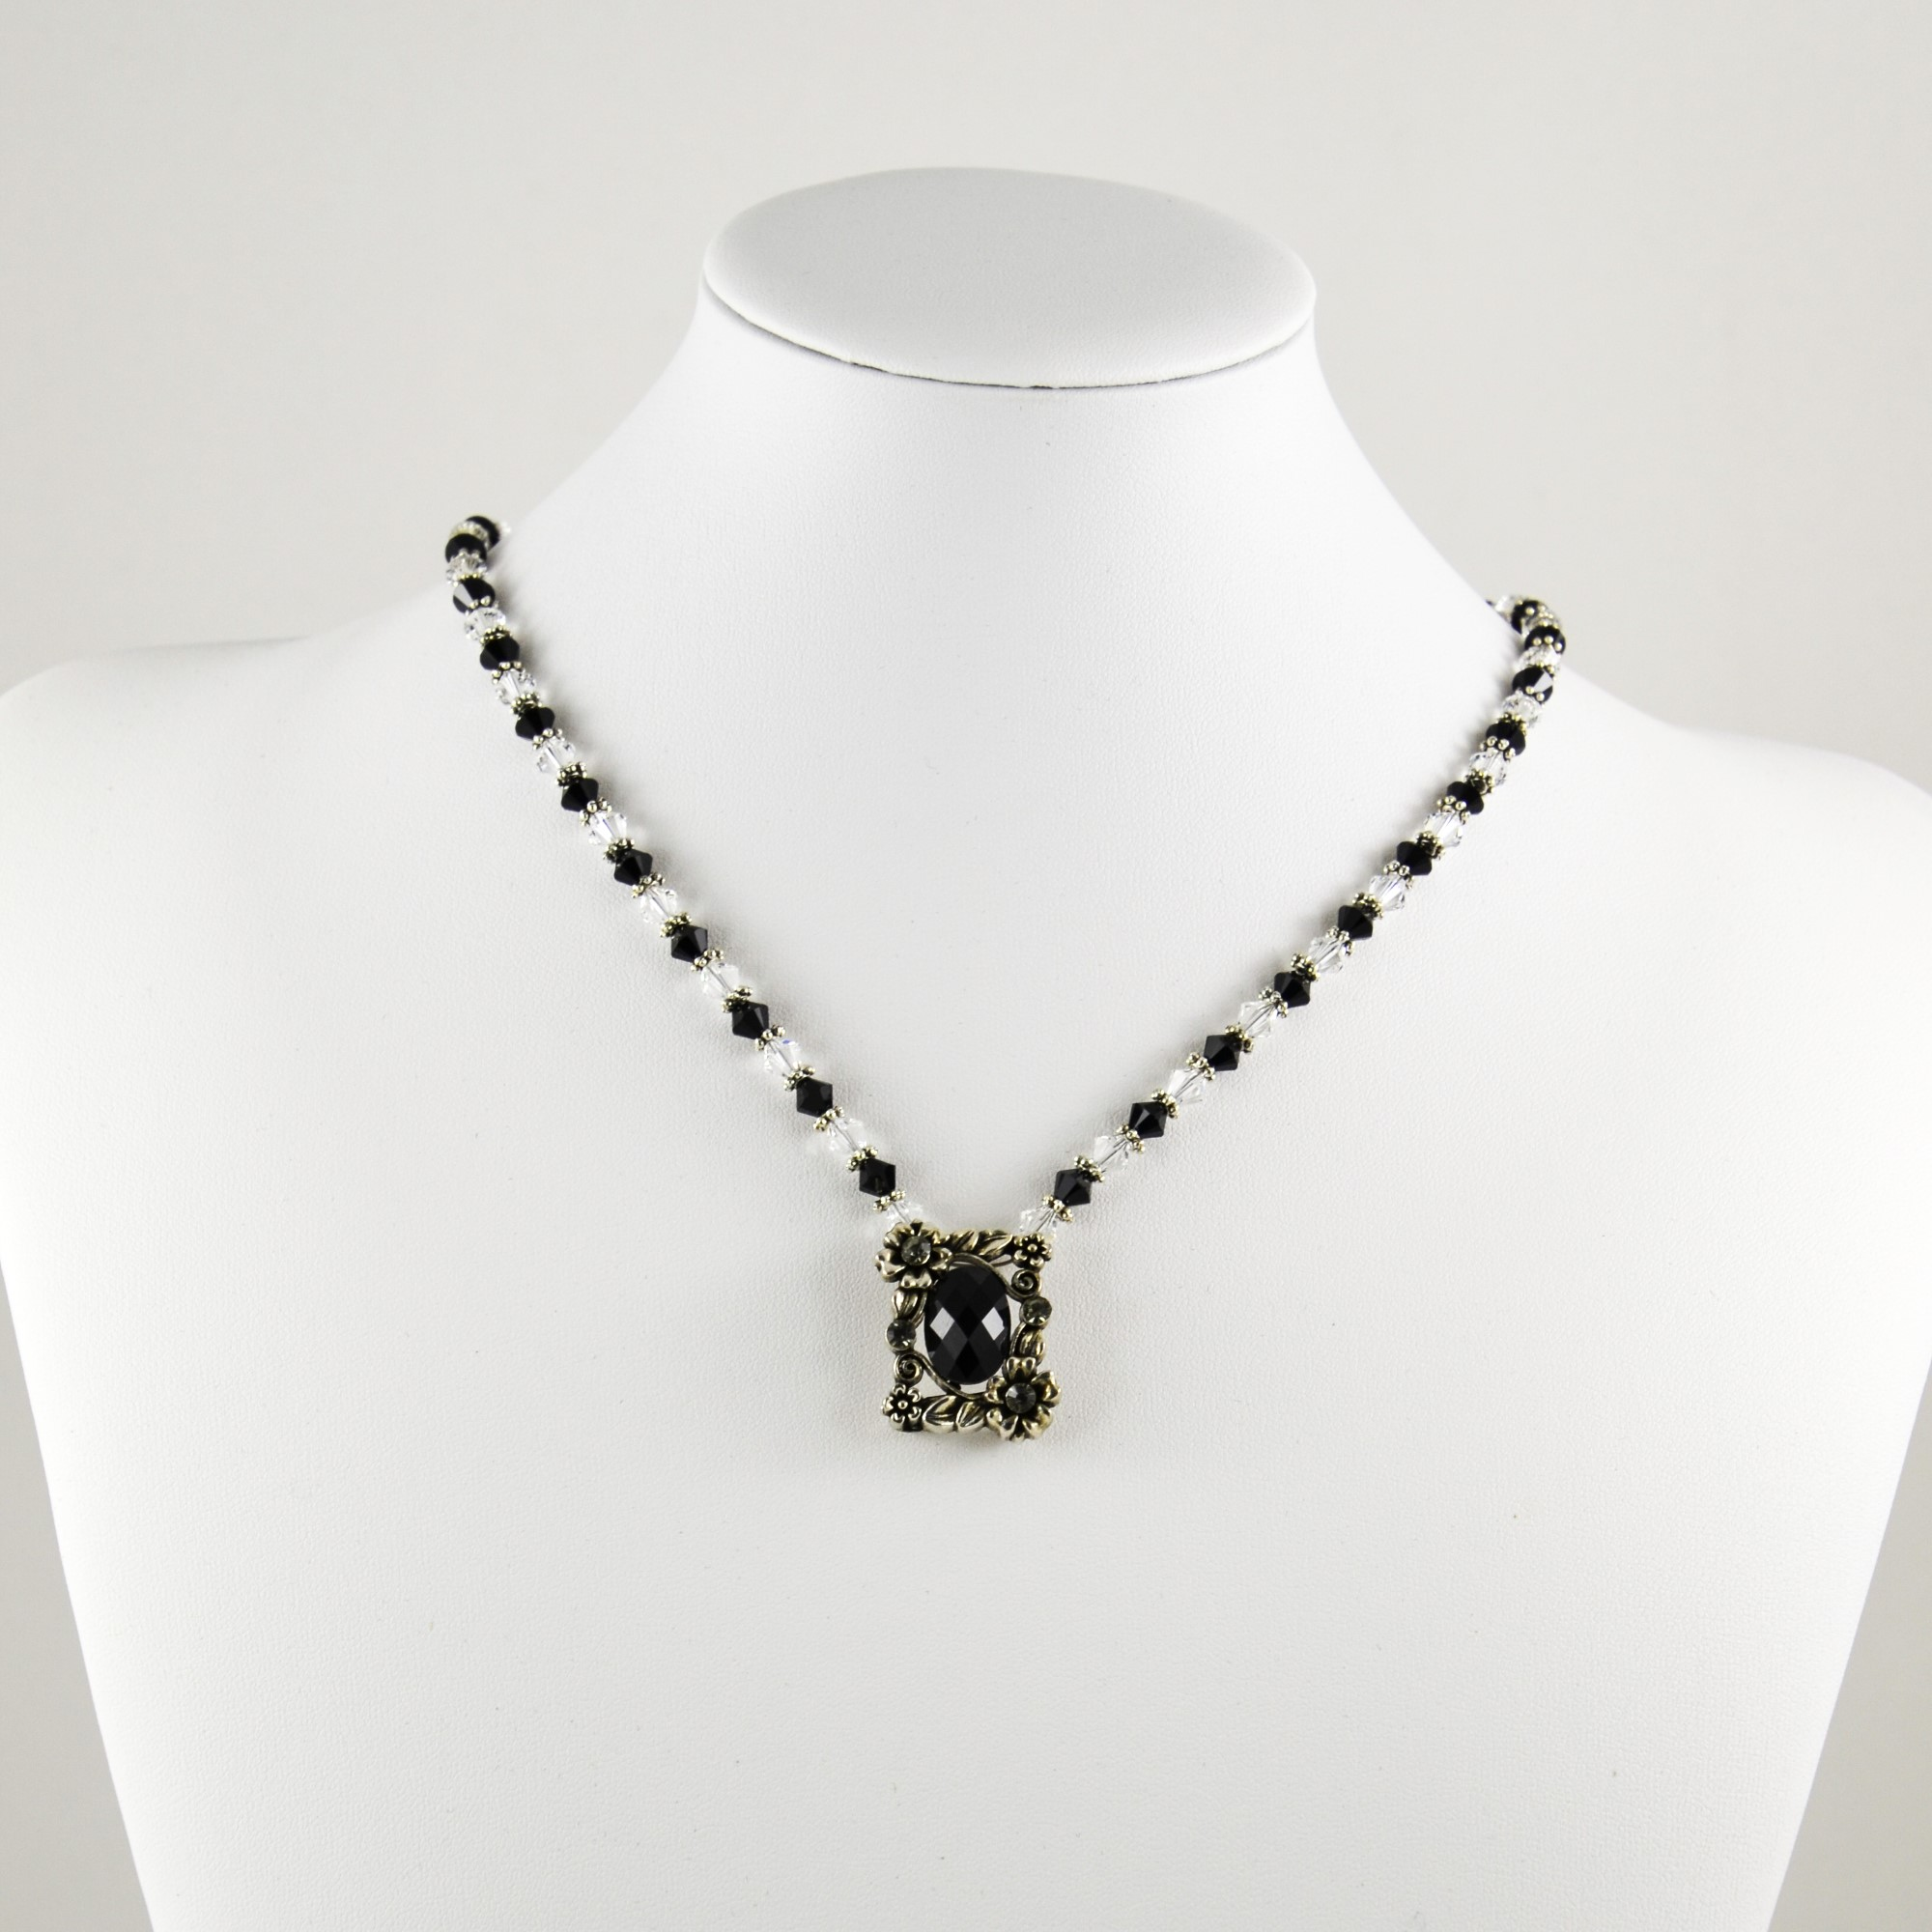 jewelry silver chain logo sale black crystal double id tone at swarovski for v org cc necklaces necklace chanel